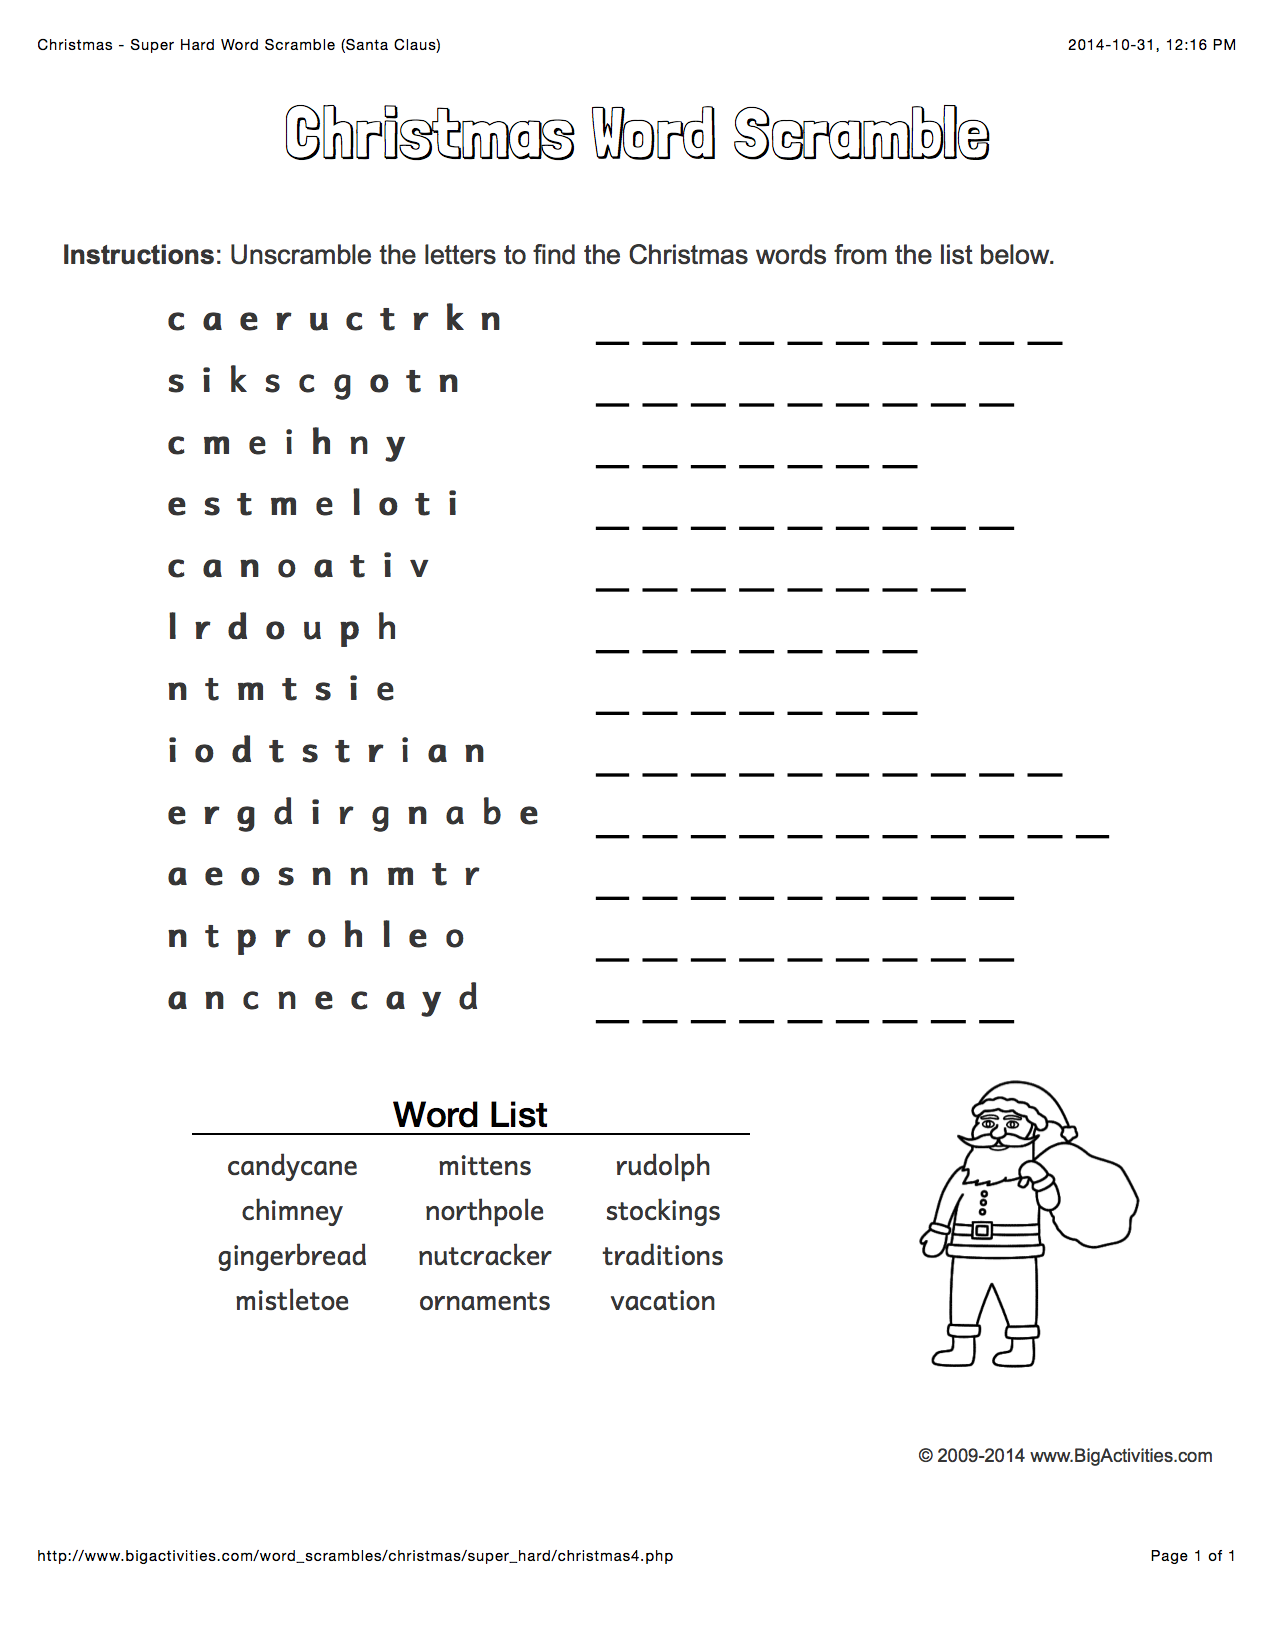 worksheet Hanukkah Worksheets christmas word scramble with santa claus 4 levels of difficulty hanukkah the torah scrambled words change each time you visit